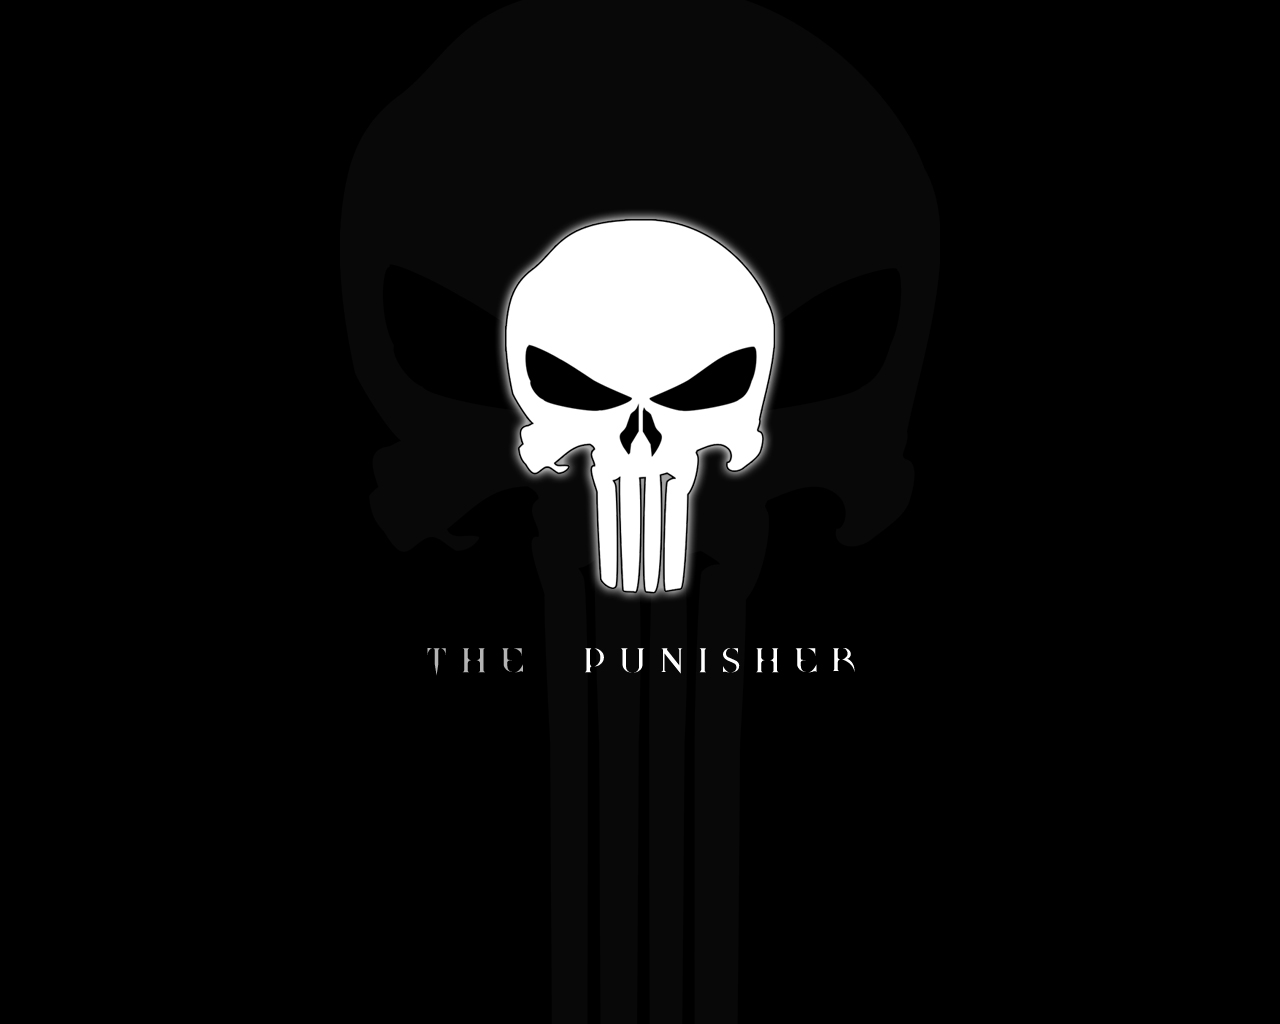 The Punisher Skull Logo HD Wallpapers Download Free Wallpapers In HD ...